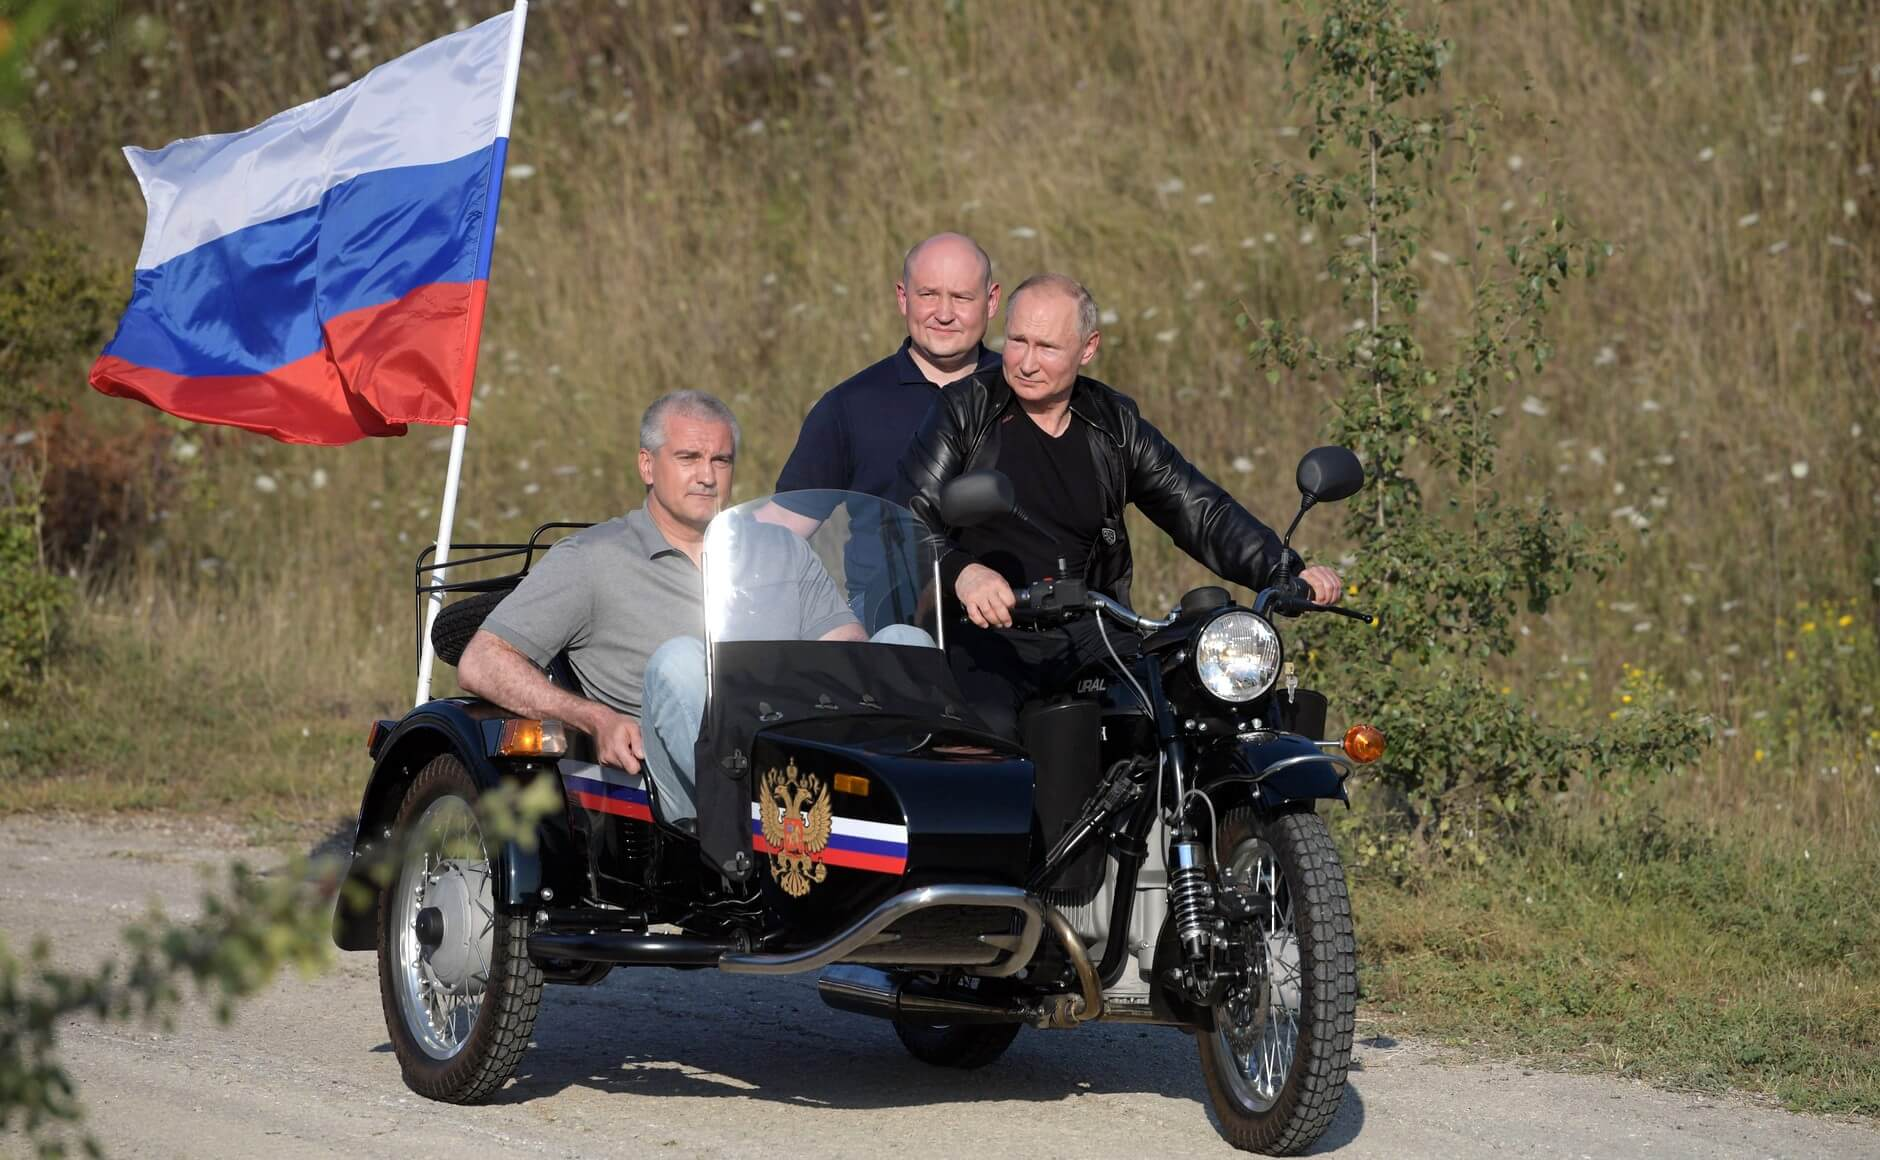 Putin on a motorcycle without a helmet